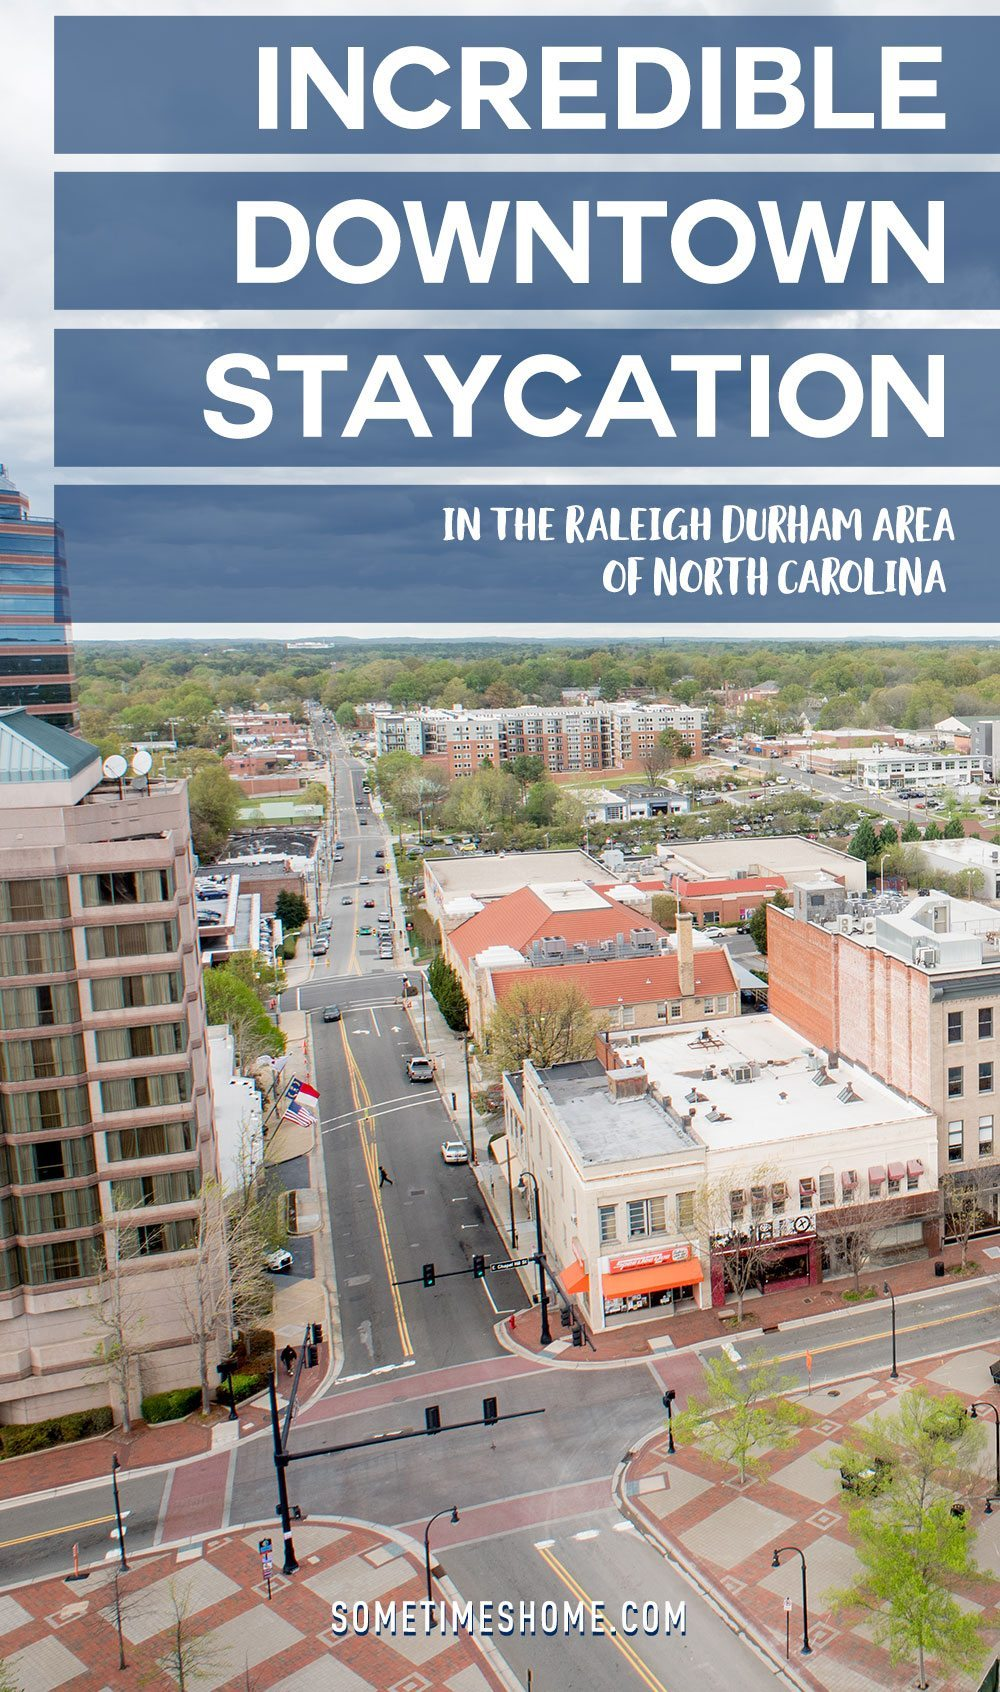 Incredible Downtown Durham Staycation Schedule. Sometimes Home travel advice.